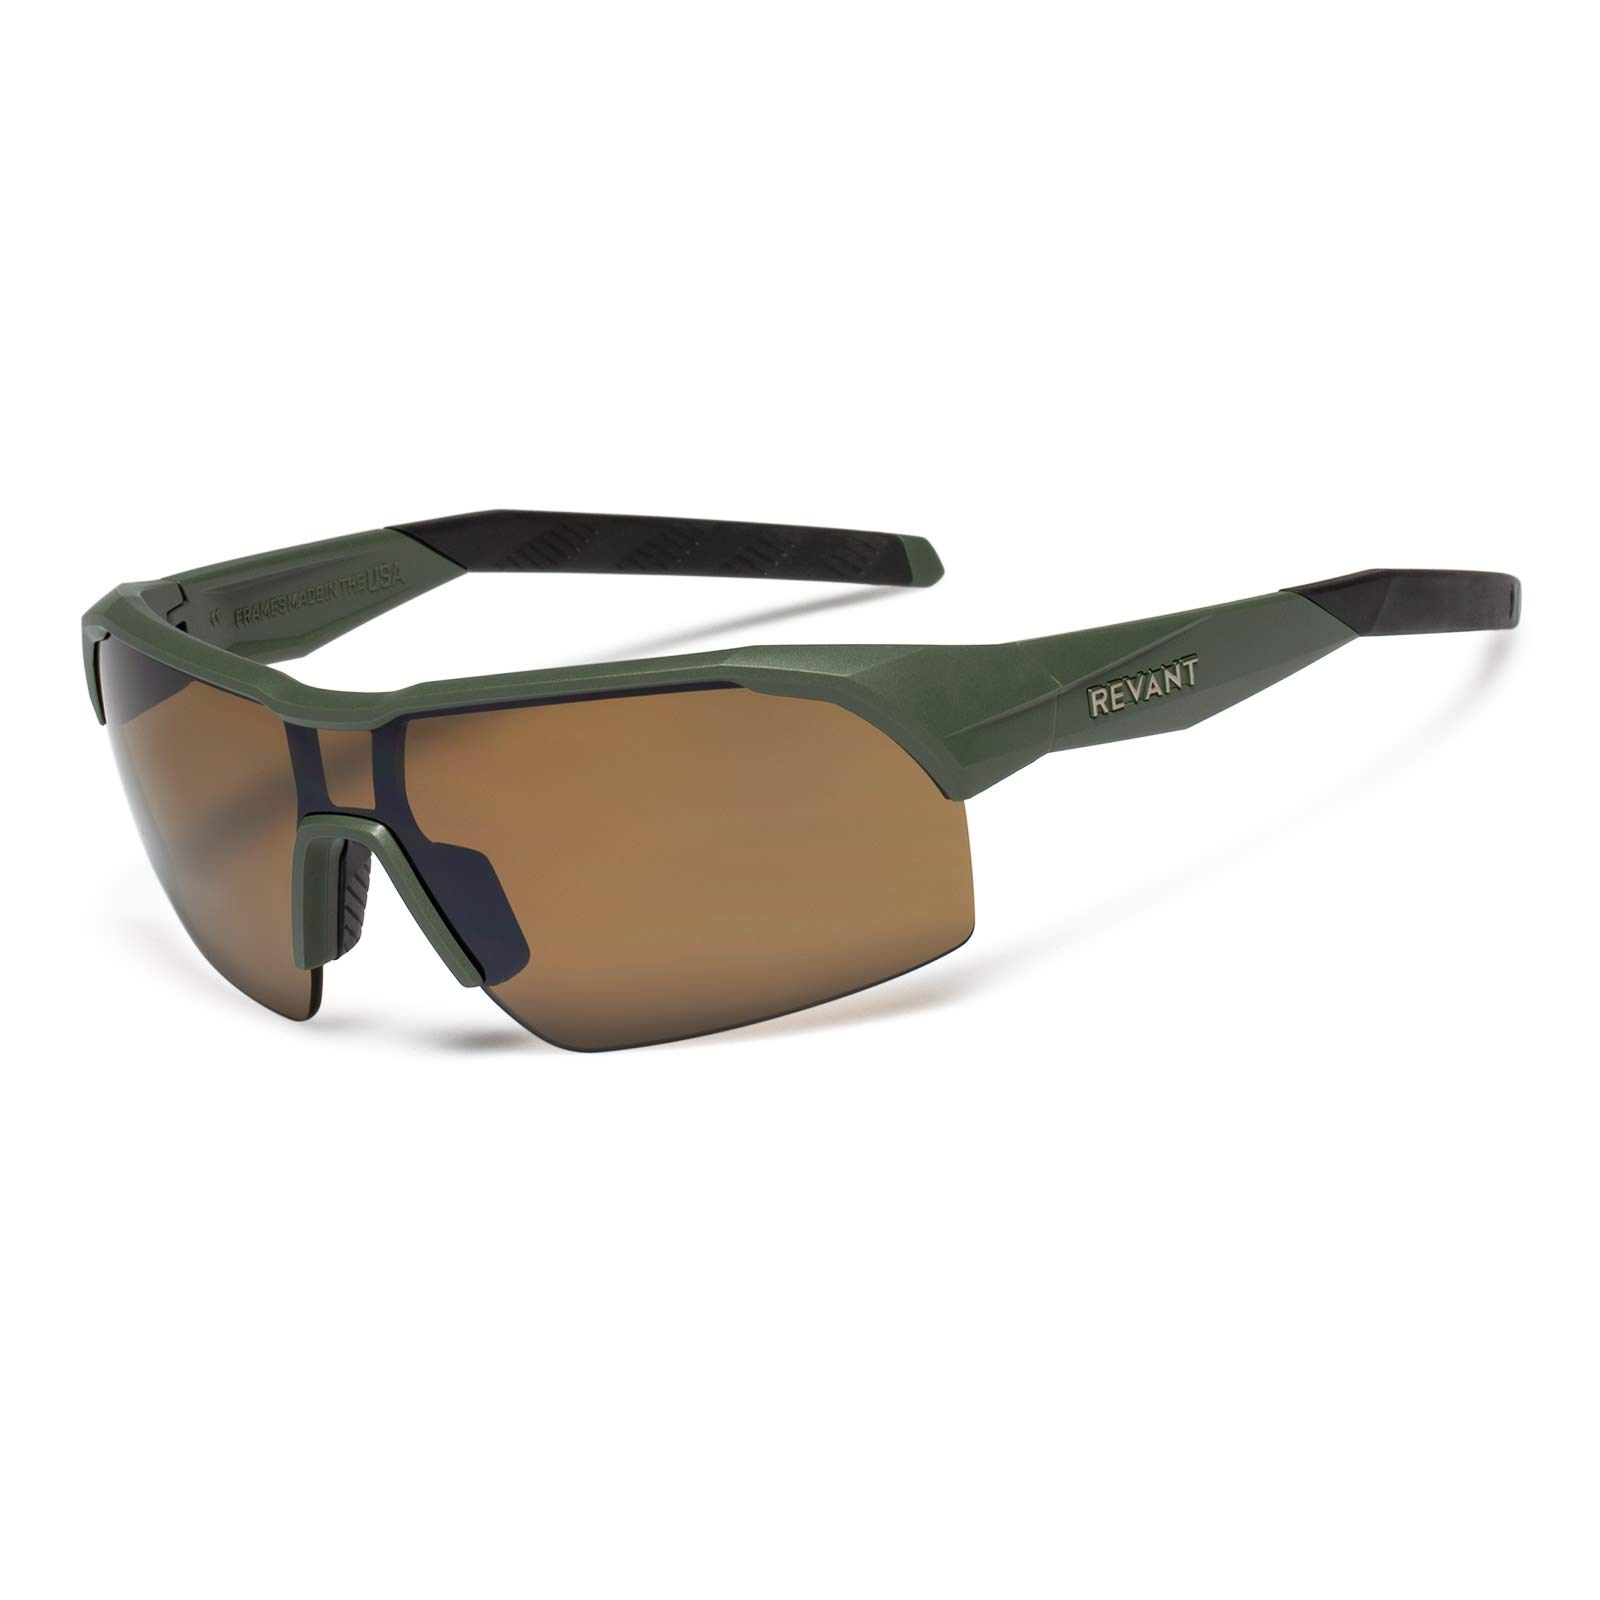 Revant S2L Sunglasses Polarized Sports Sunglasses - Ultralight Durable Matte Rugged Green Frame - for Men & Women by Revant